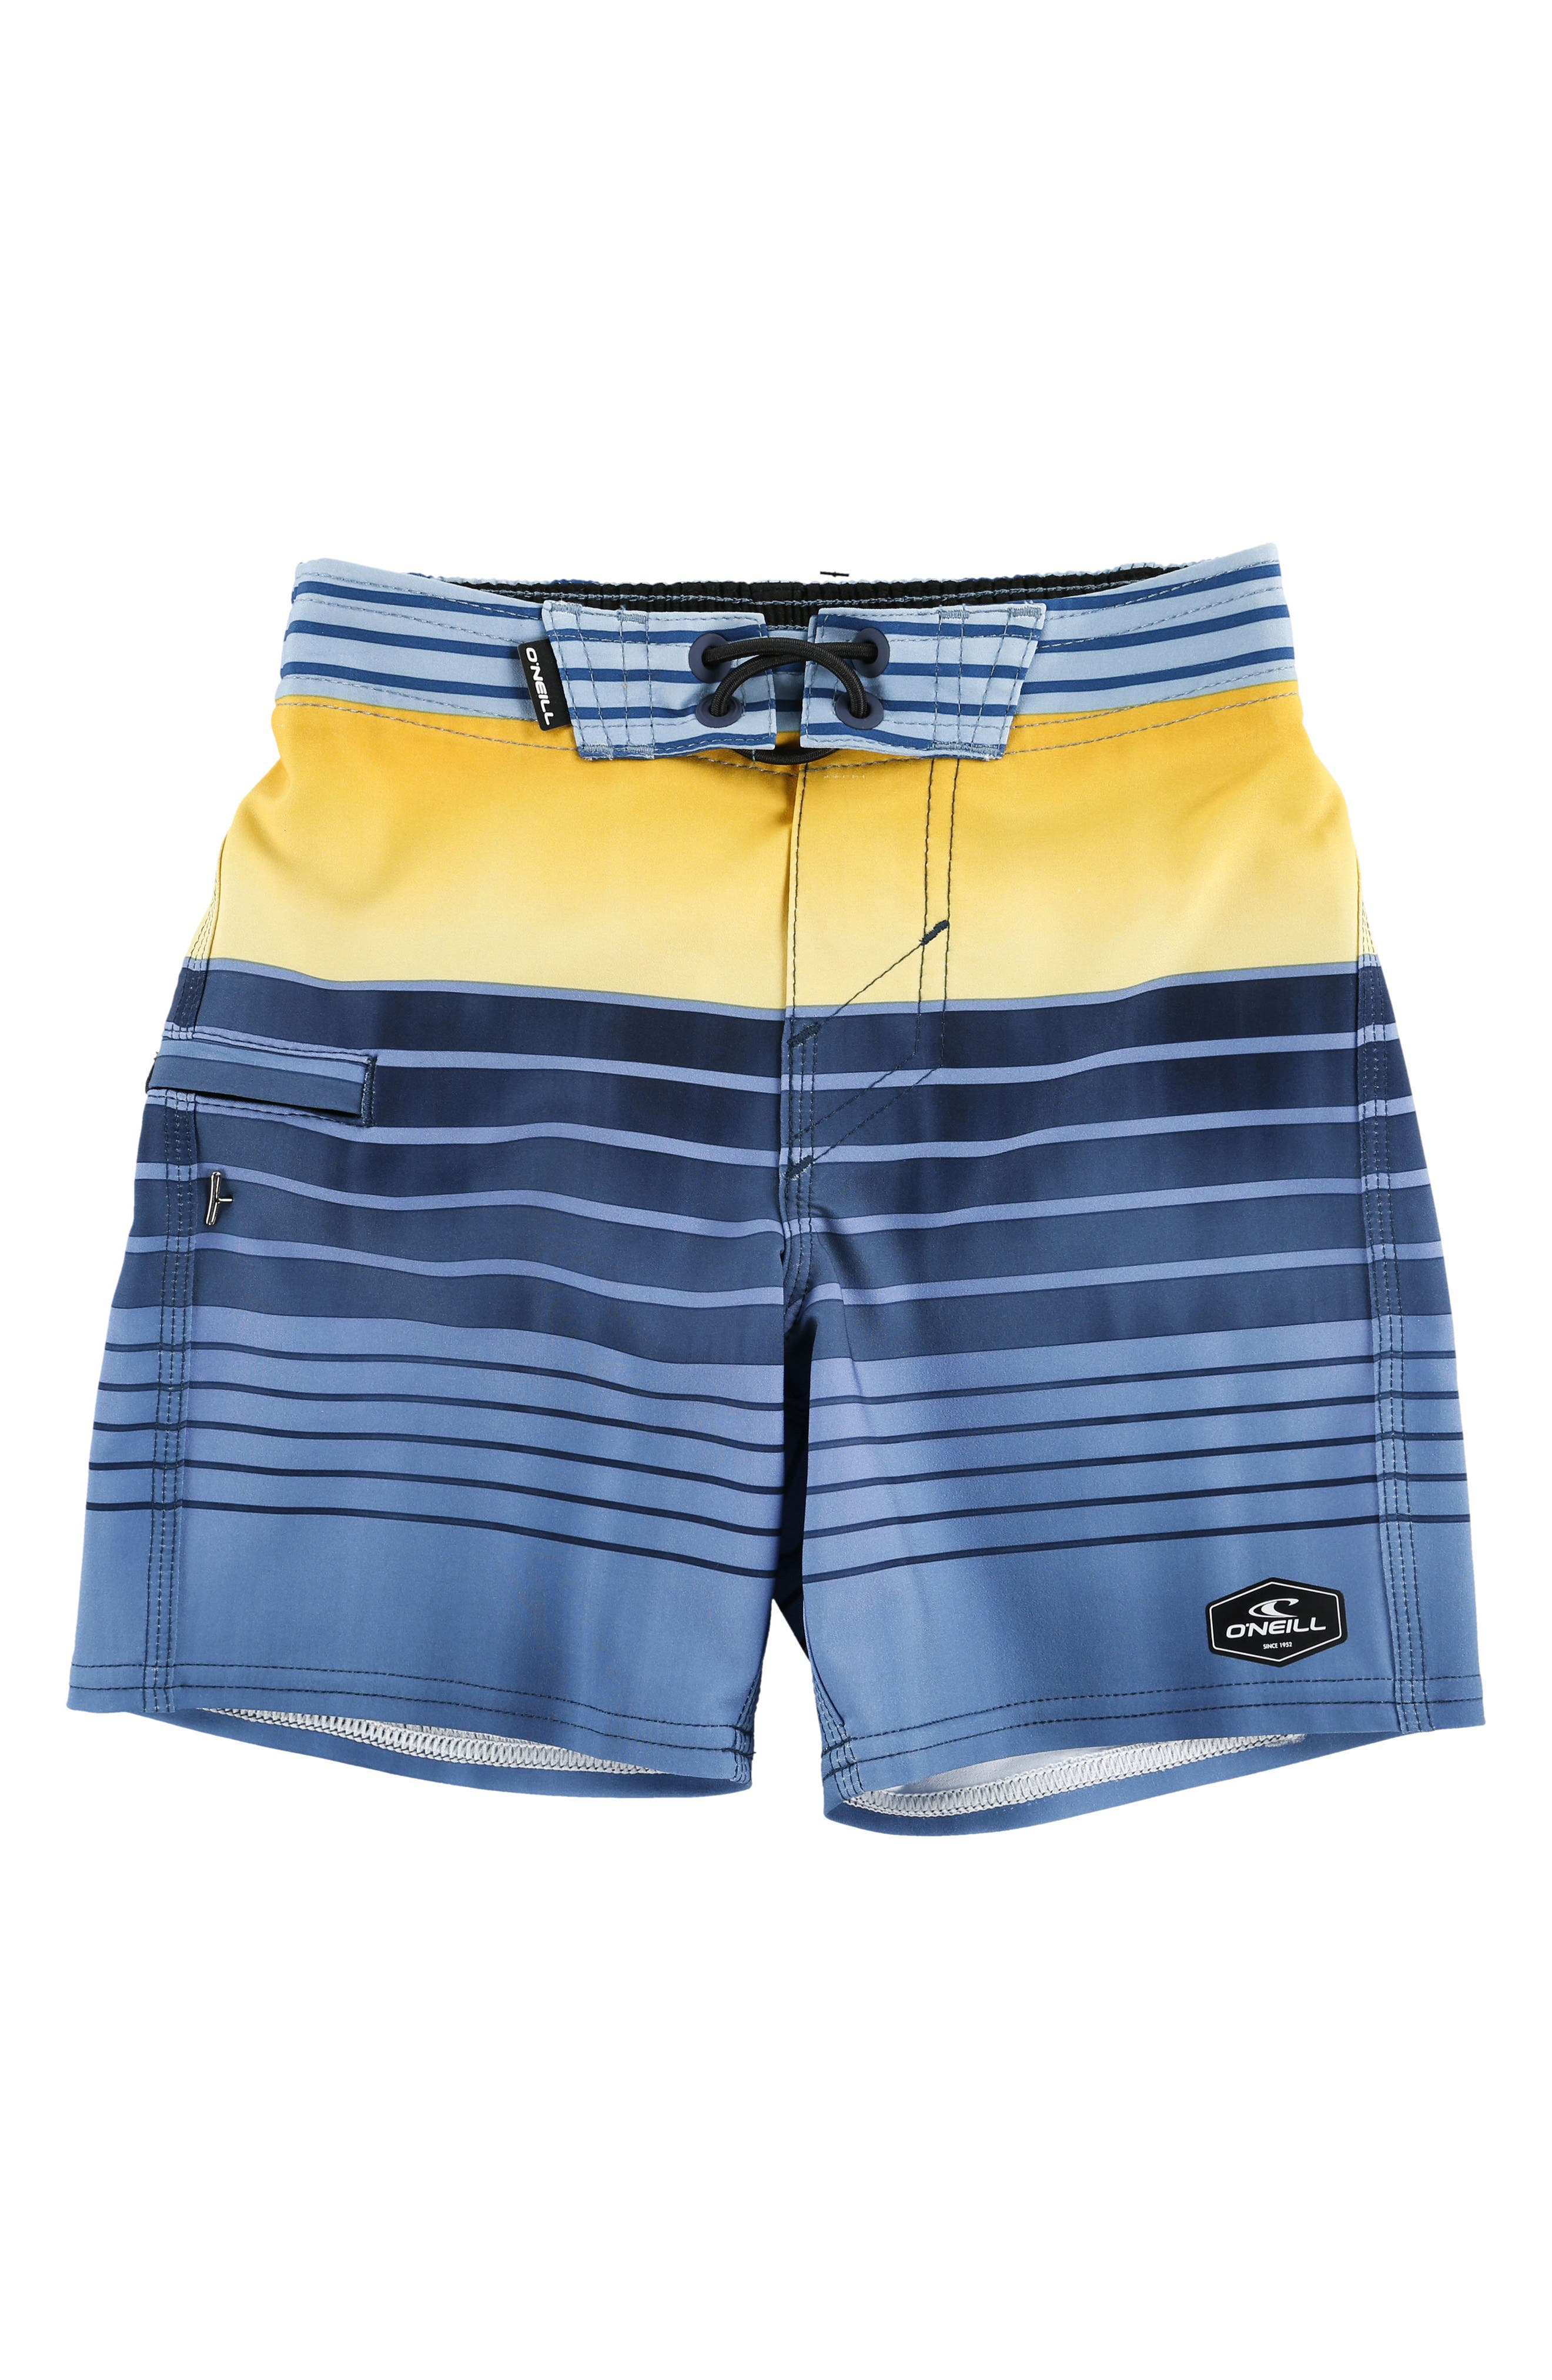 Hyperfreak Heist Board Shorts,                             Main thumbnail 5, color,